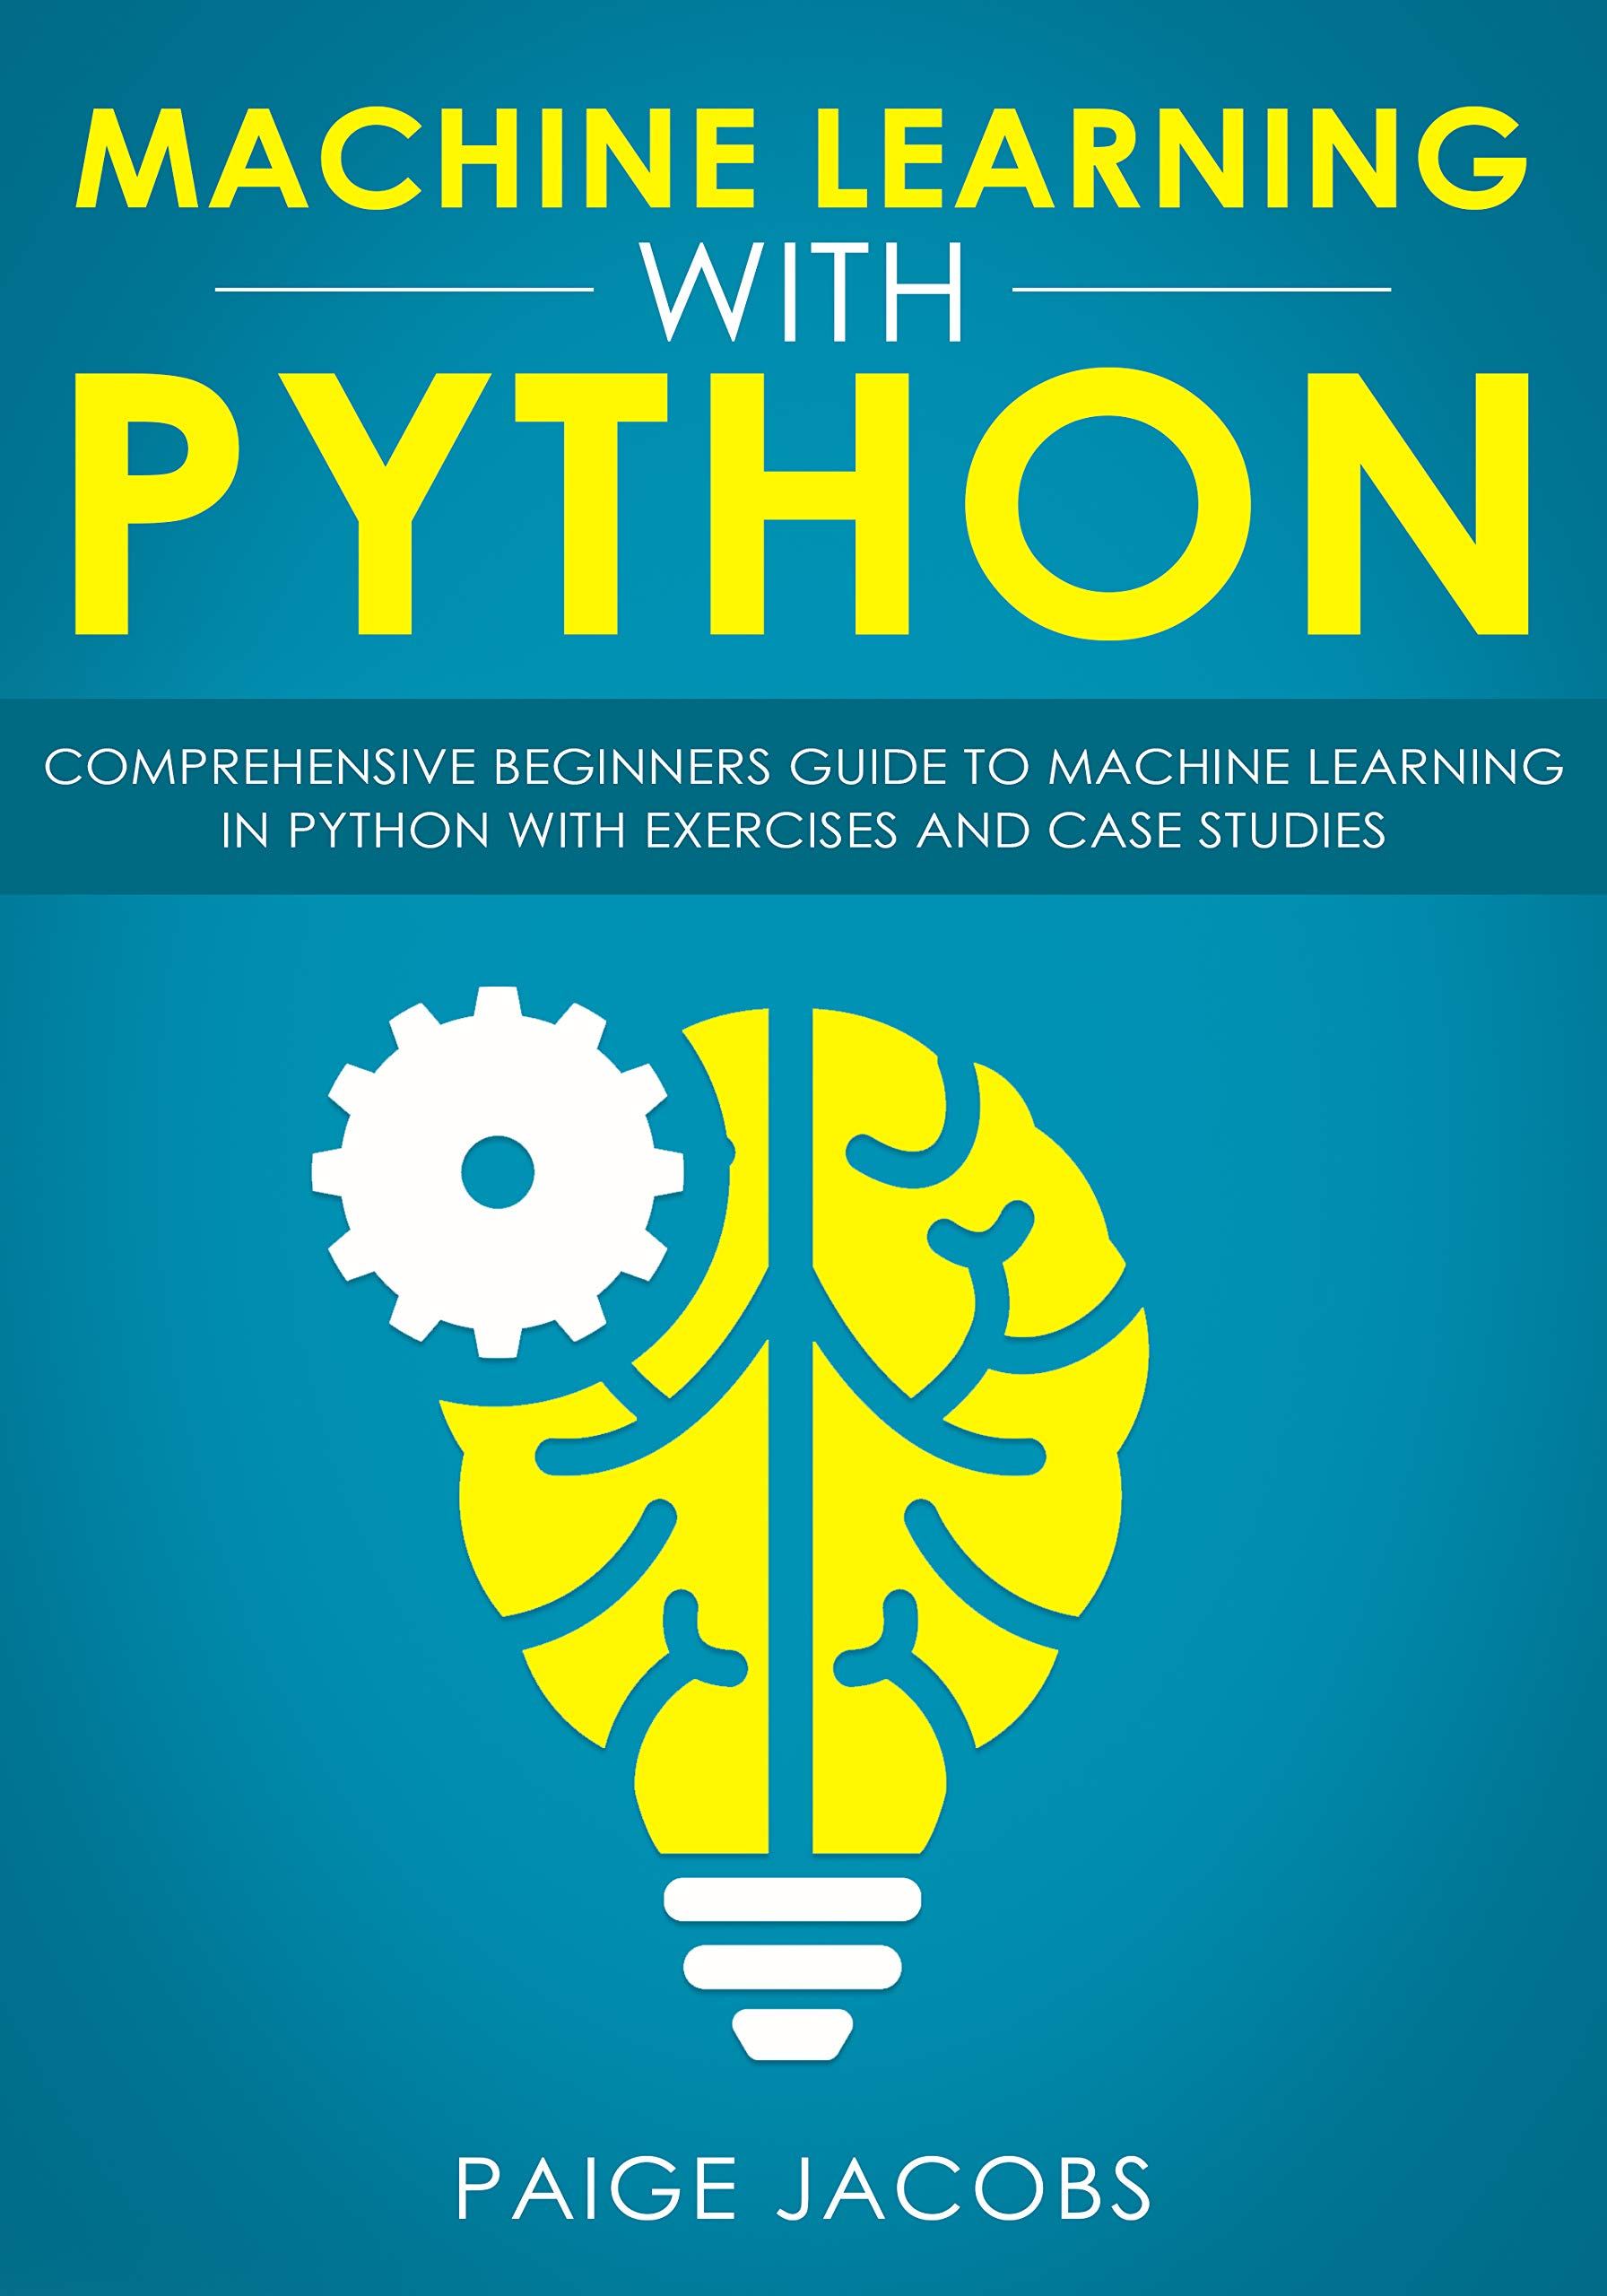 Machine Learning with Python: Comprehensive Beginner's Guide to Machine Learning in Python with Exercises and Case Studies por Paige Jacobs